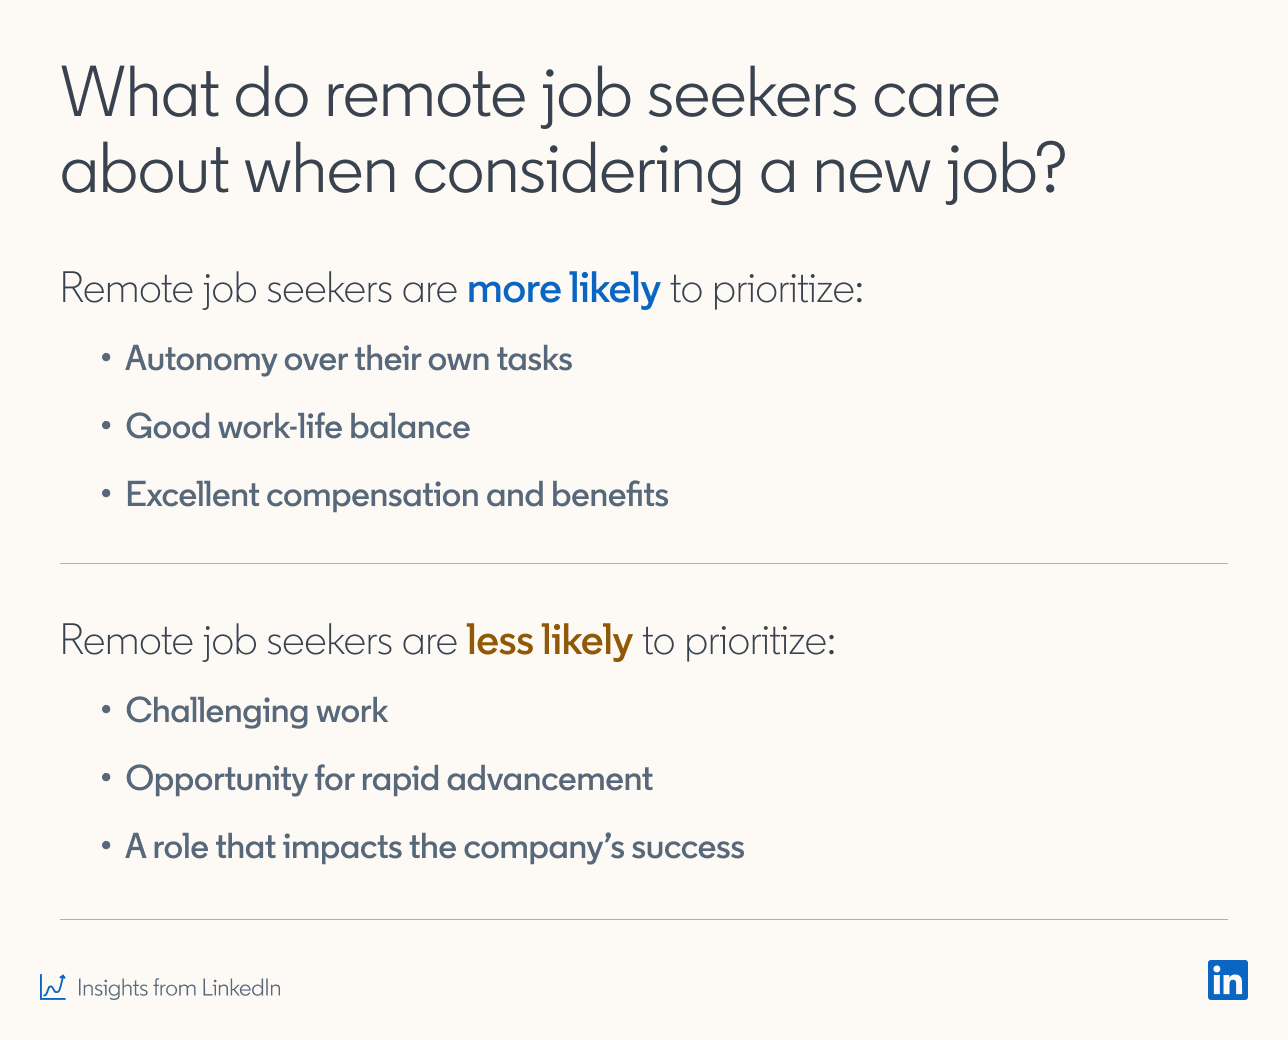 What do remote job seekers care about when considering a new job?  Remote job seekers are more likely to prioritize: - Autonomy over their own tasks - Good work-life balance - Excellent compensation and benefits  Remote job seekers are less likely to prioritize: - Challenging work - Opportunity for rapid advancement - A role that impacts the company's success  *Insights from LinkedIn